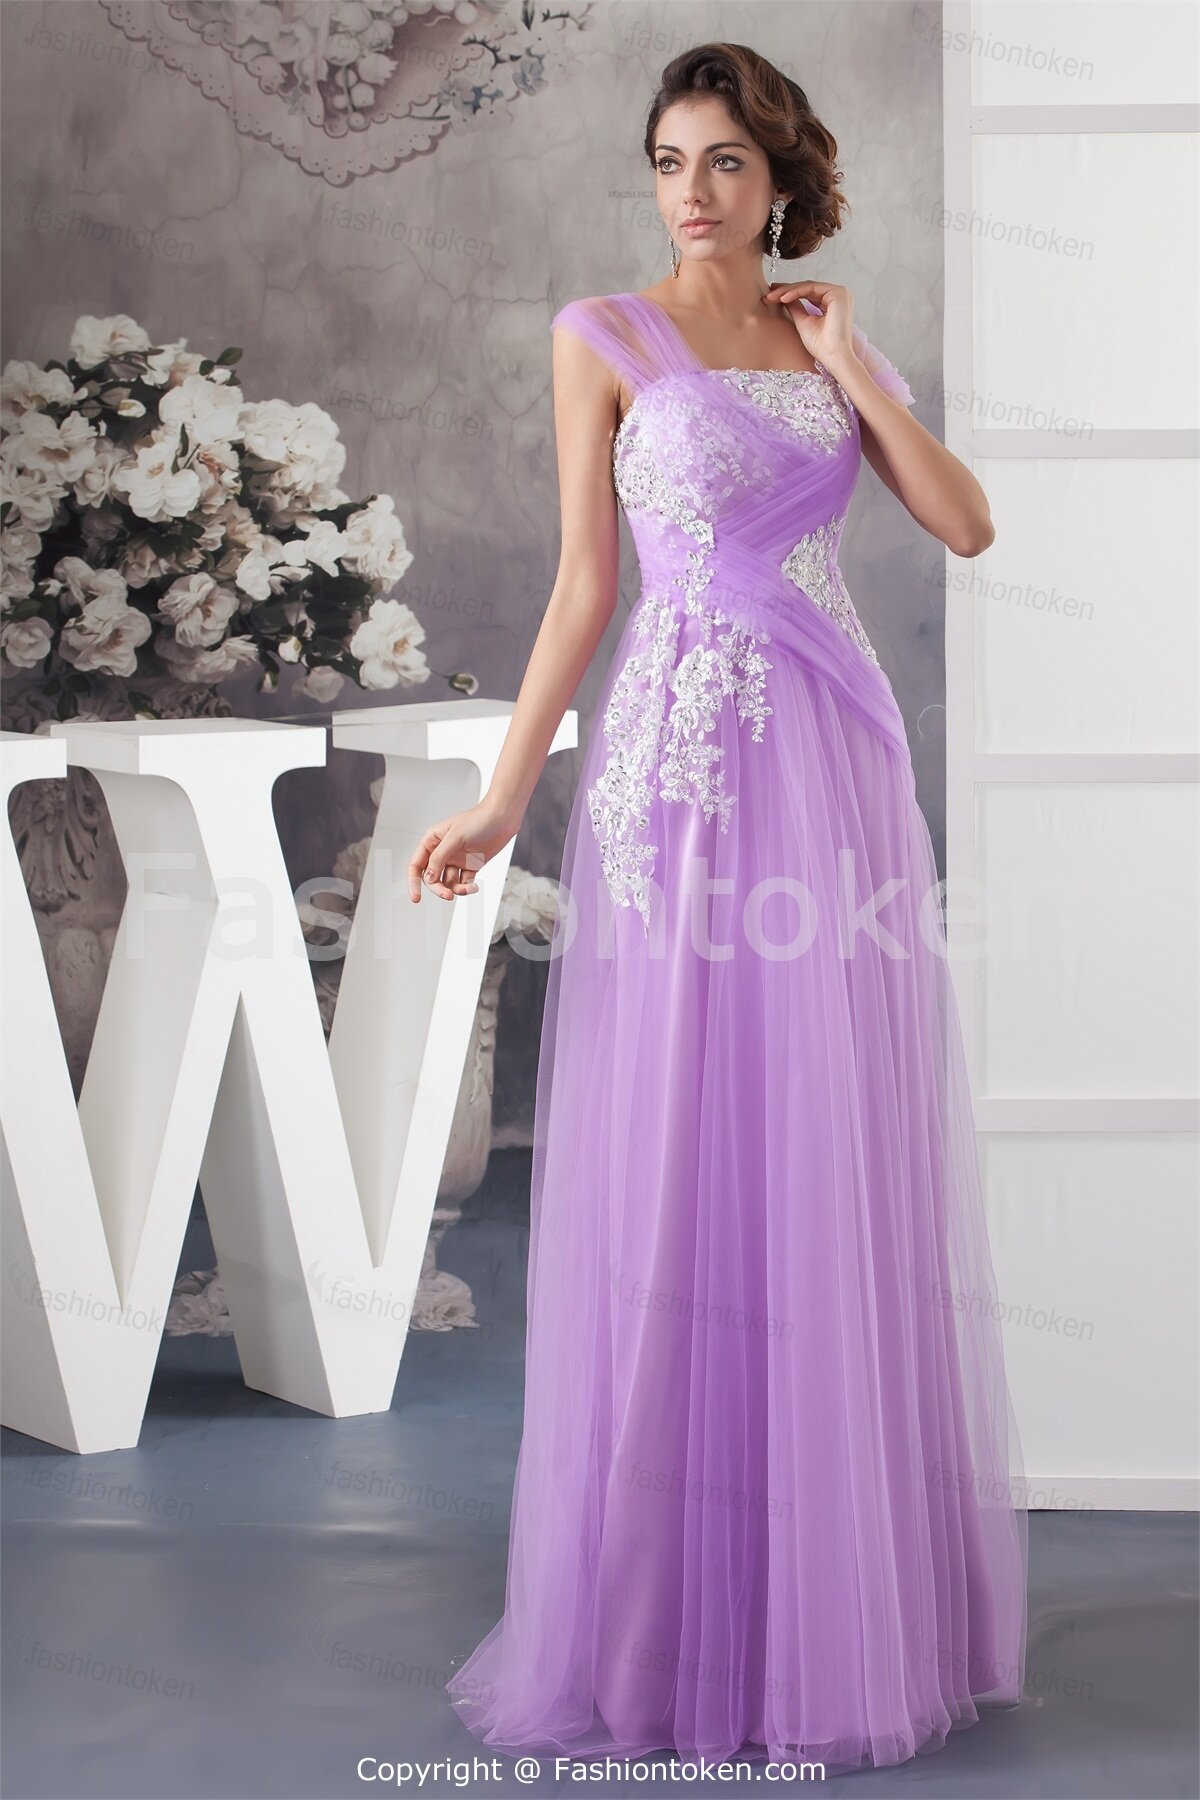 Light purple wedding dresses pictures ideas guide to for Light purple wedding dress